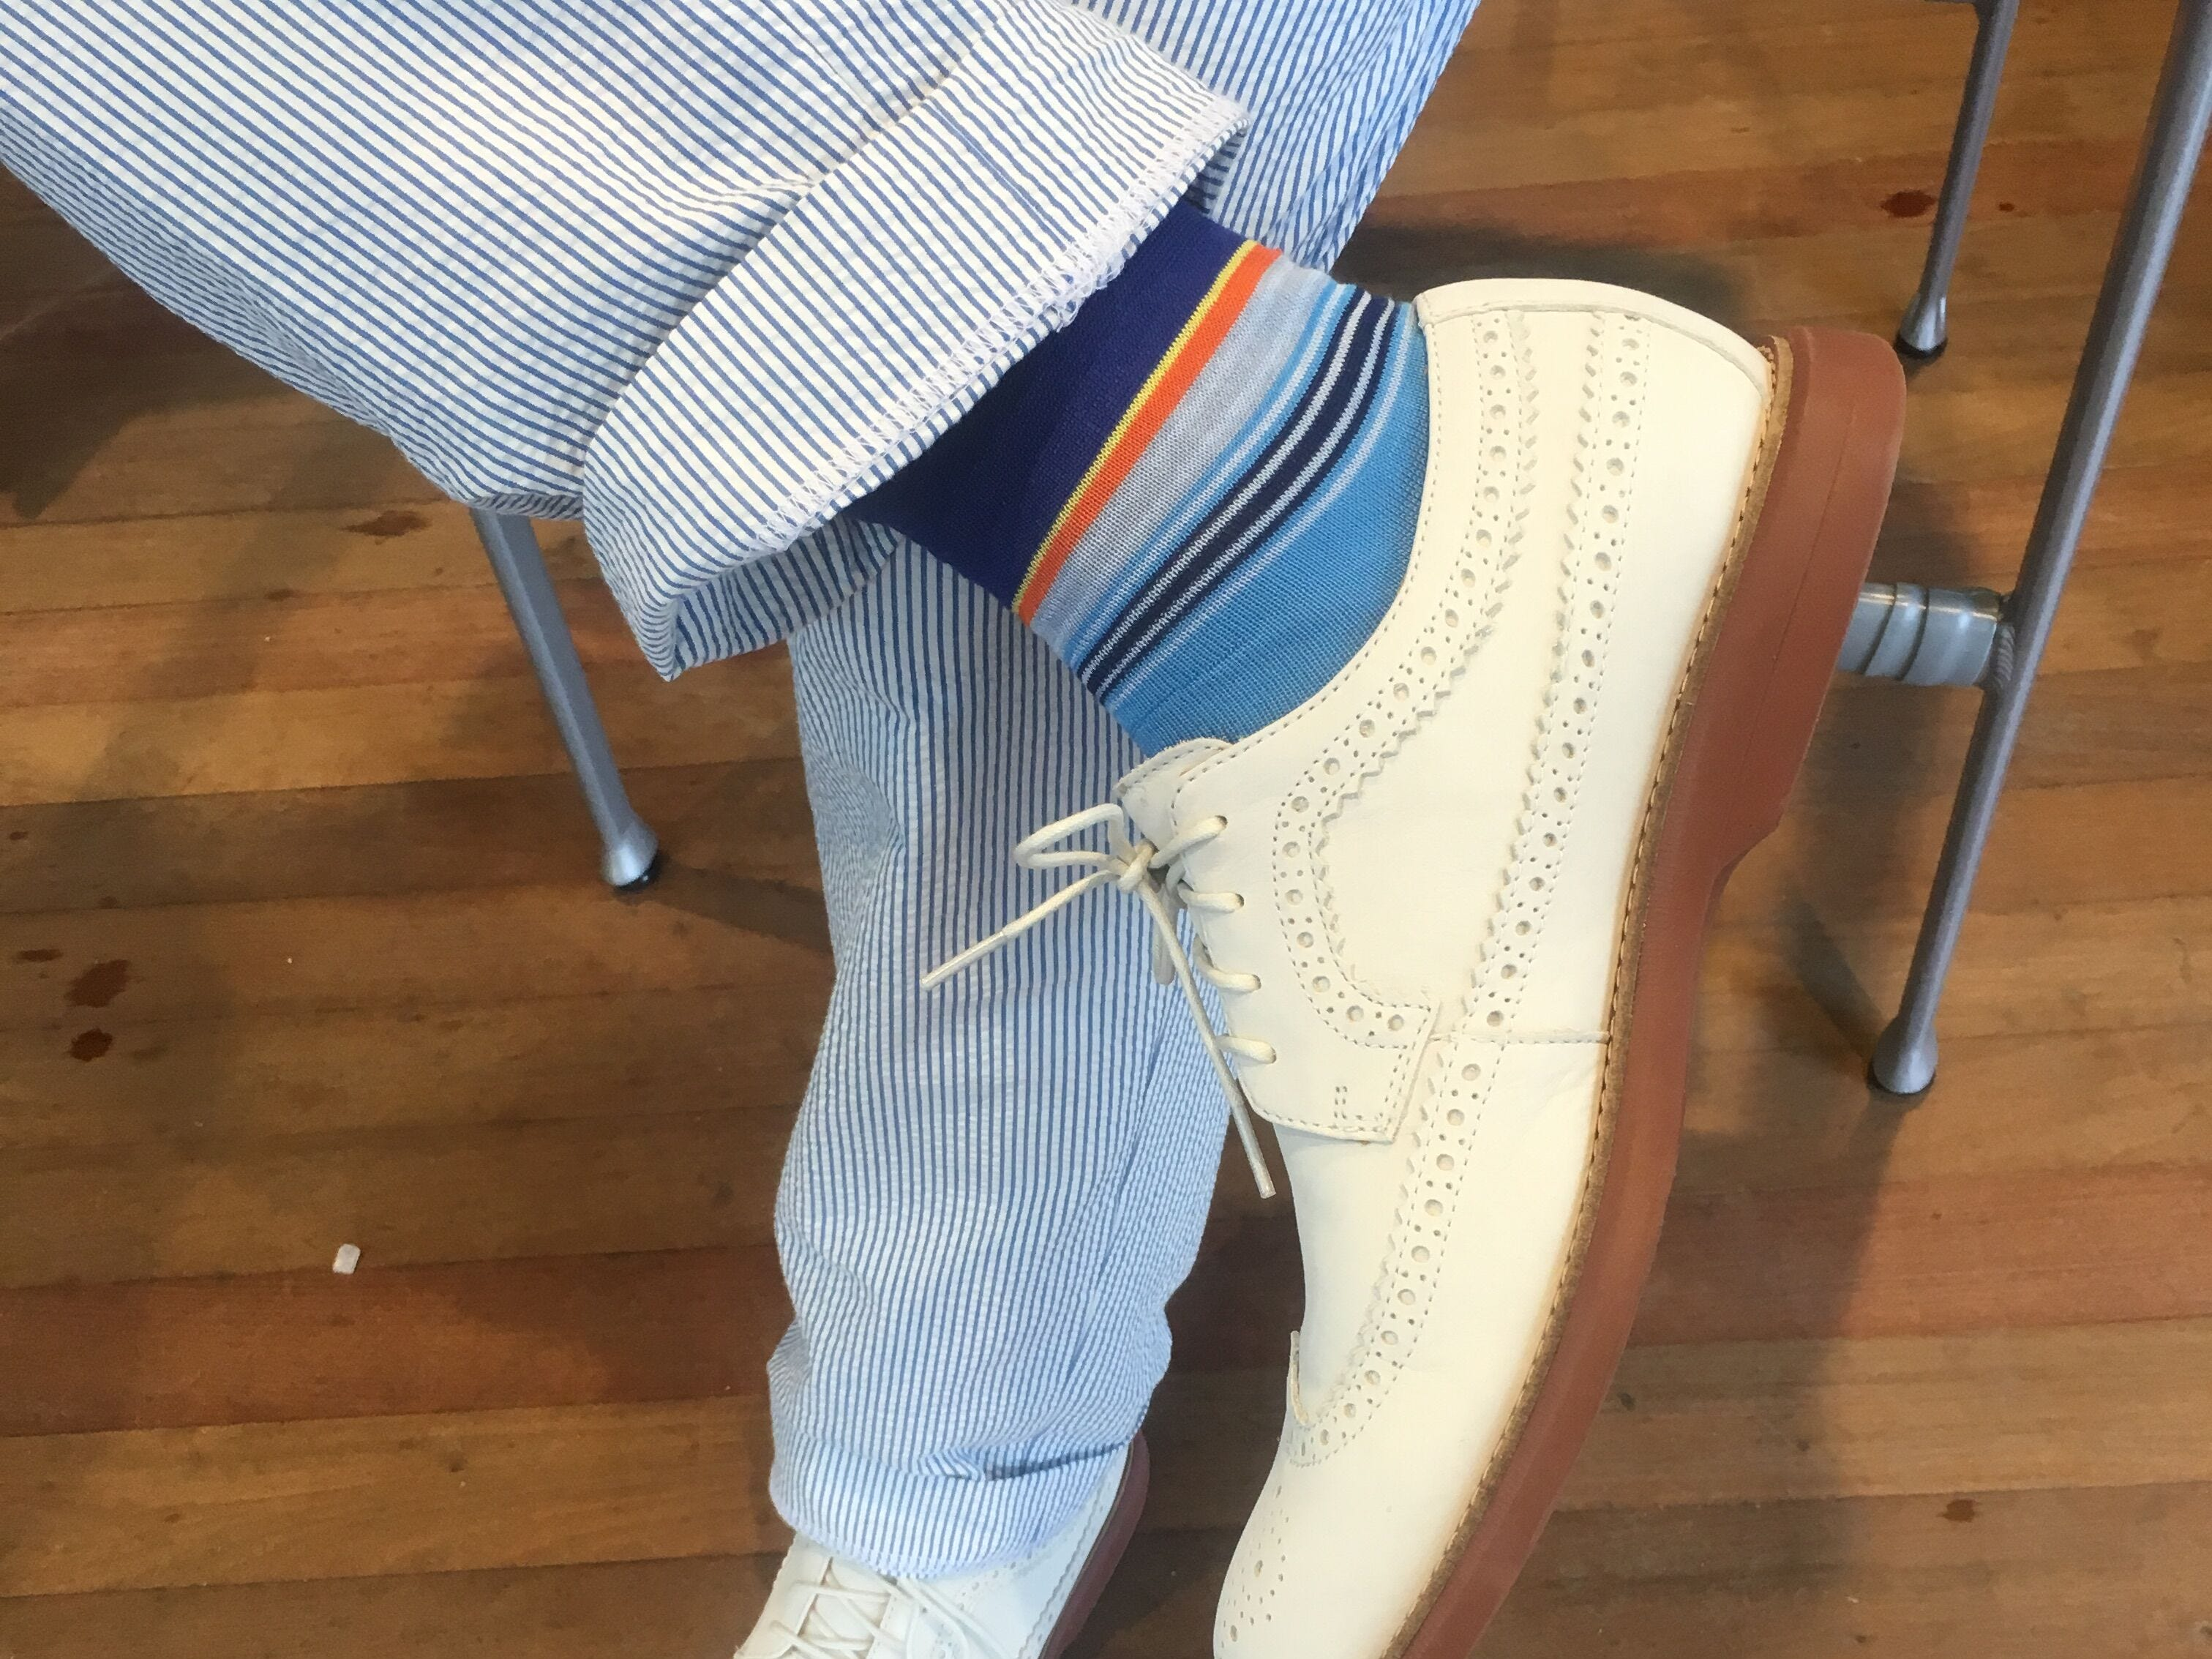 """Chef Tom Colicchio's socks, shoes and slacks as styled by """"Top Chef"""" stylist Charlotte Rose Coleman"""